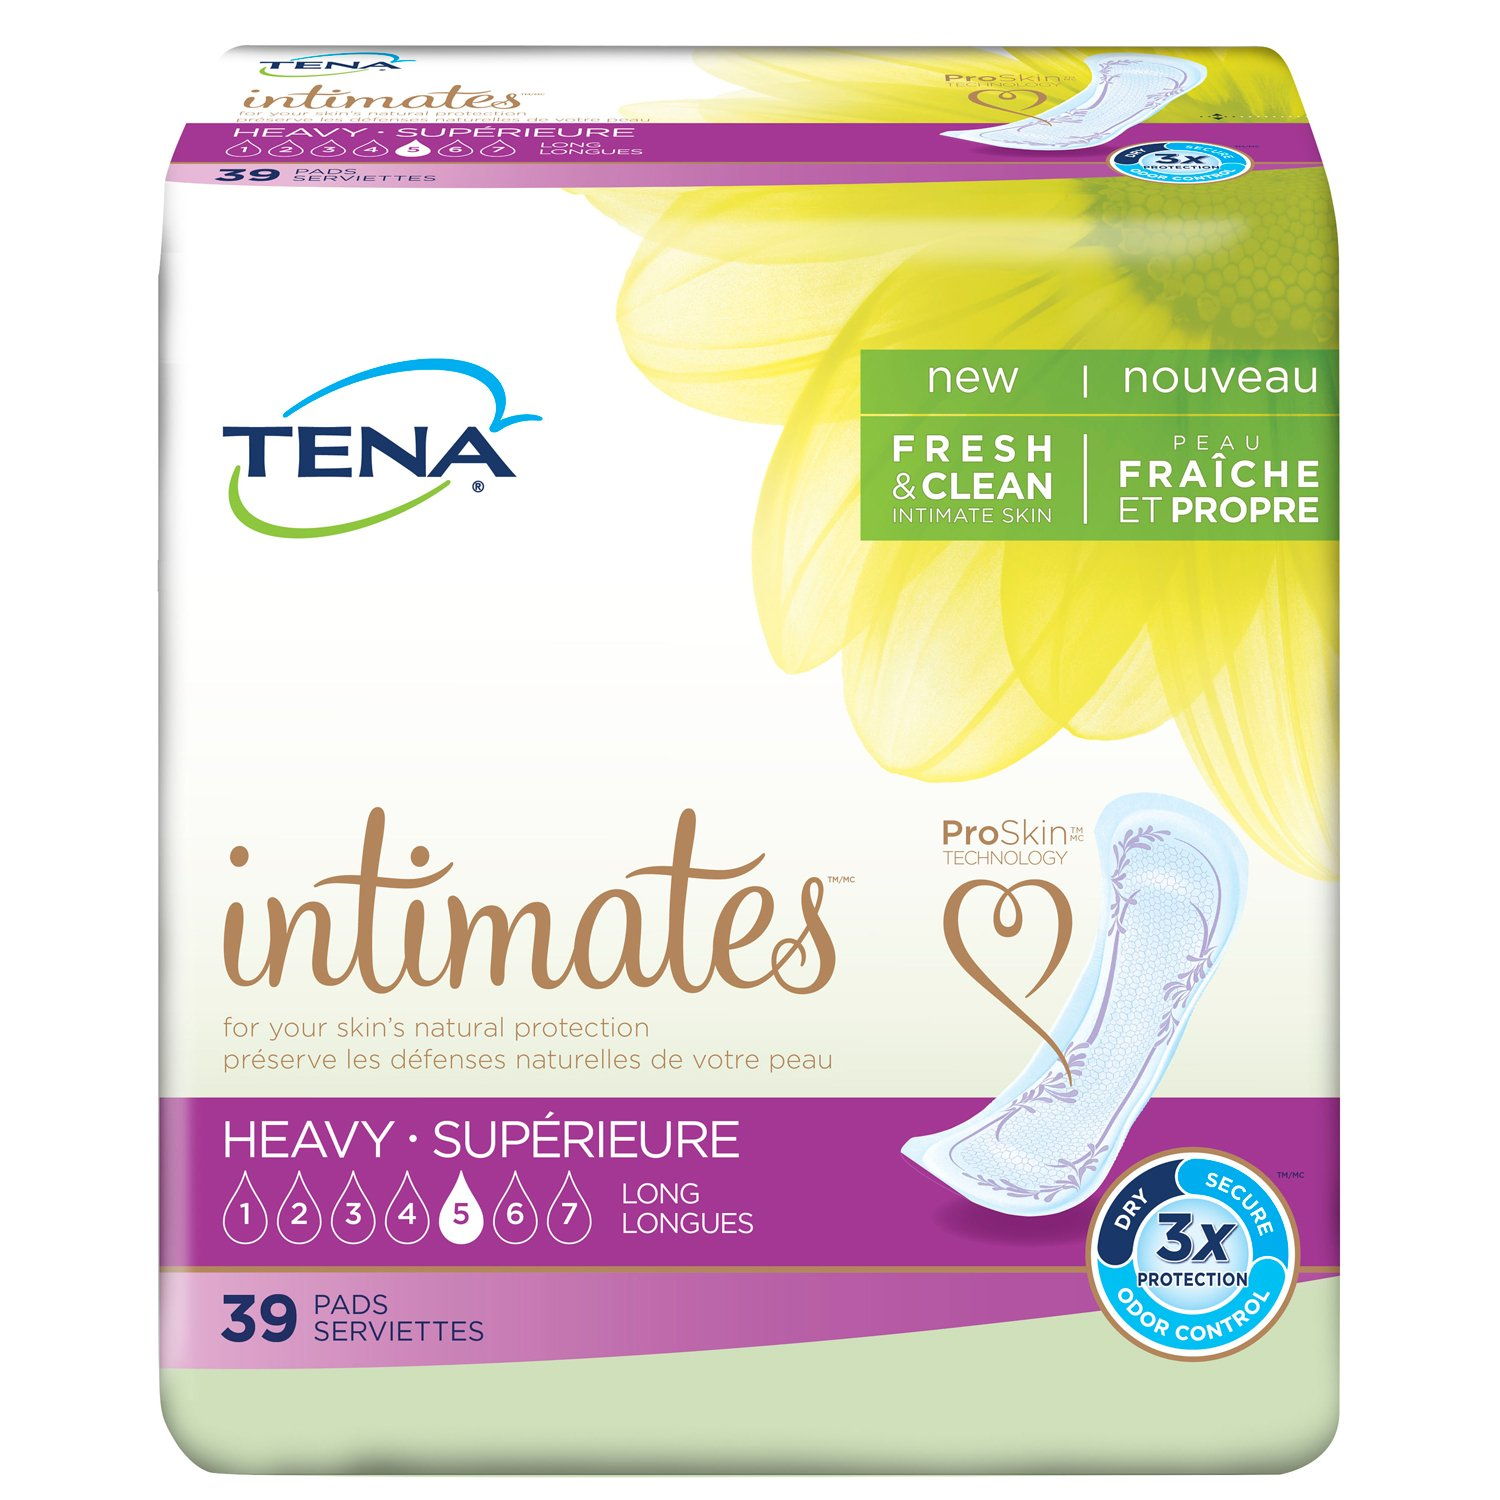 Tena Intimates Pads Long, Heavy Absorbency,39 count by TENA